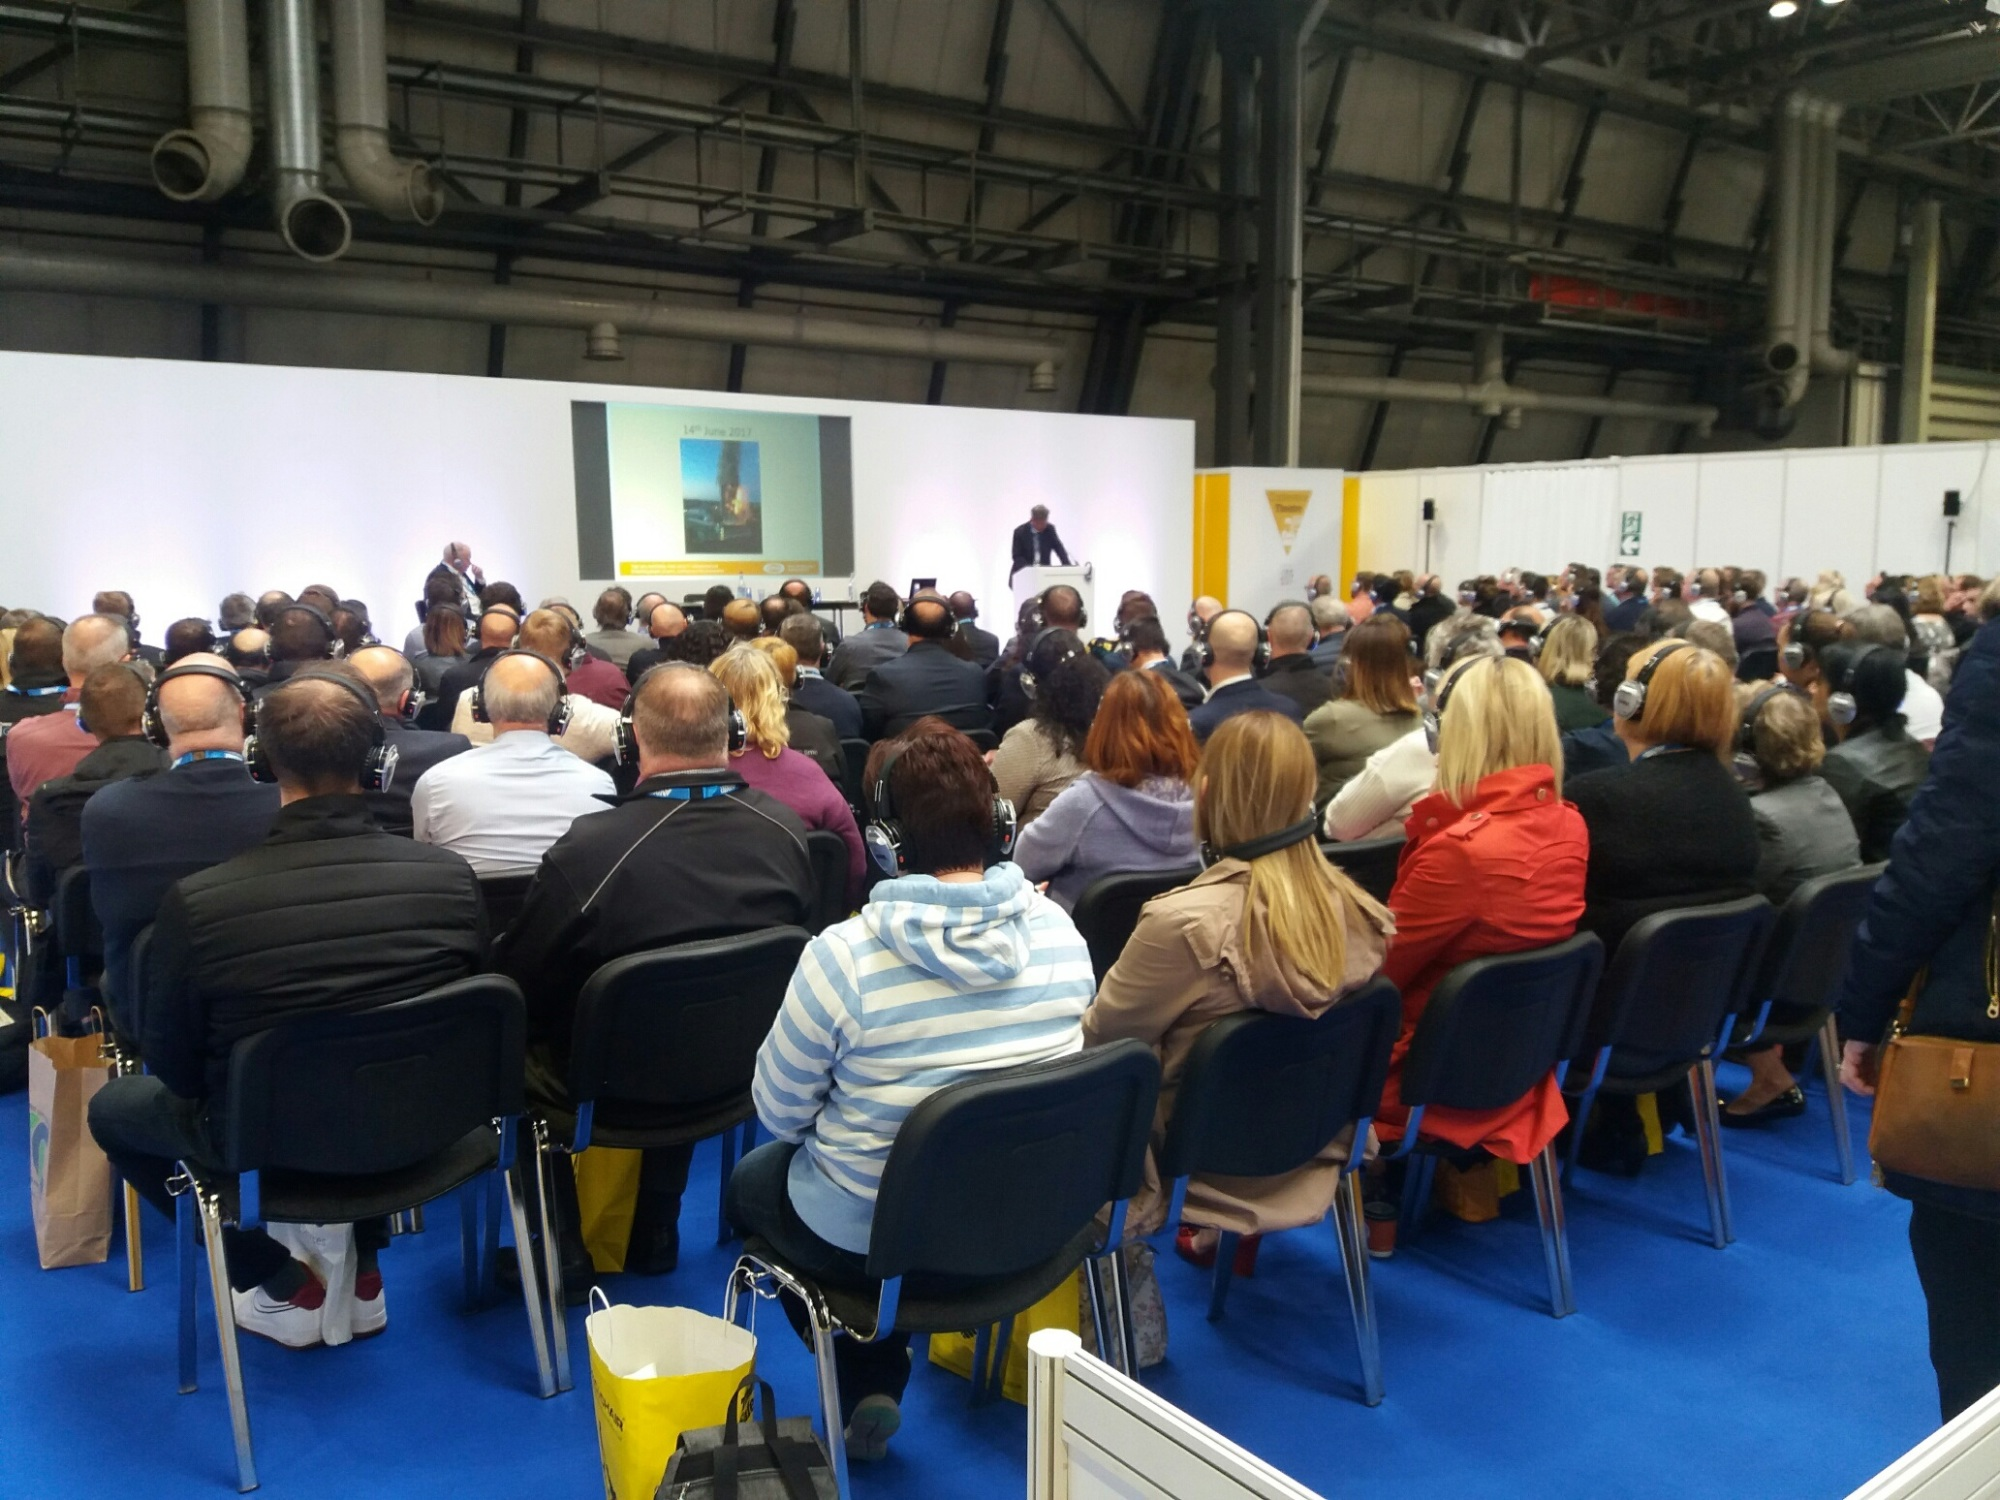 The Health & Safety Event conference theatre